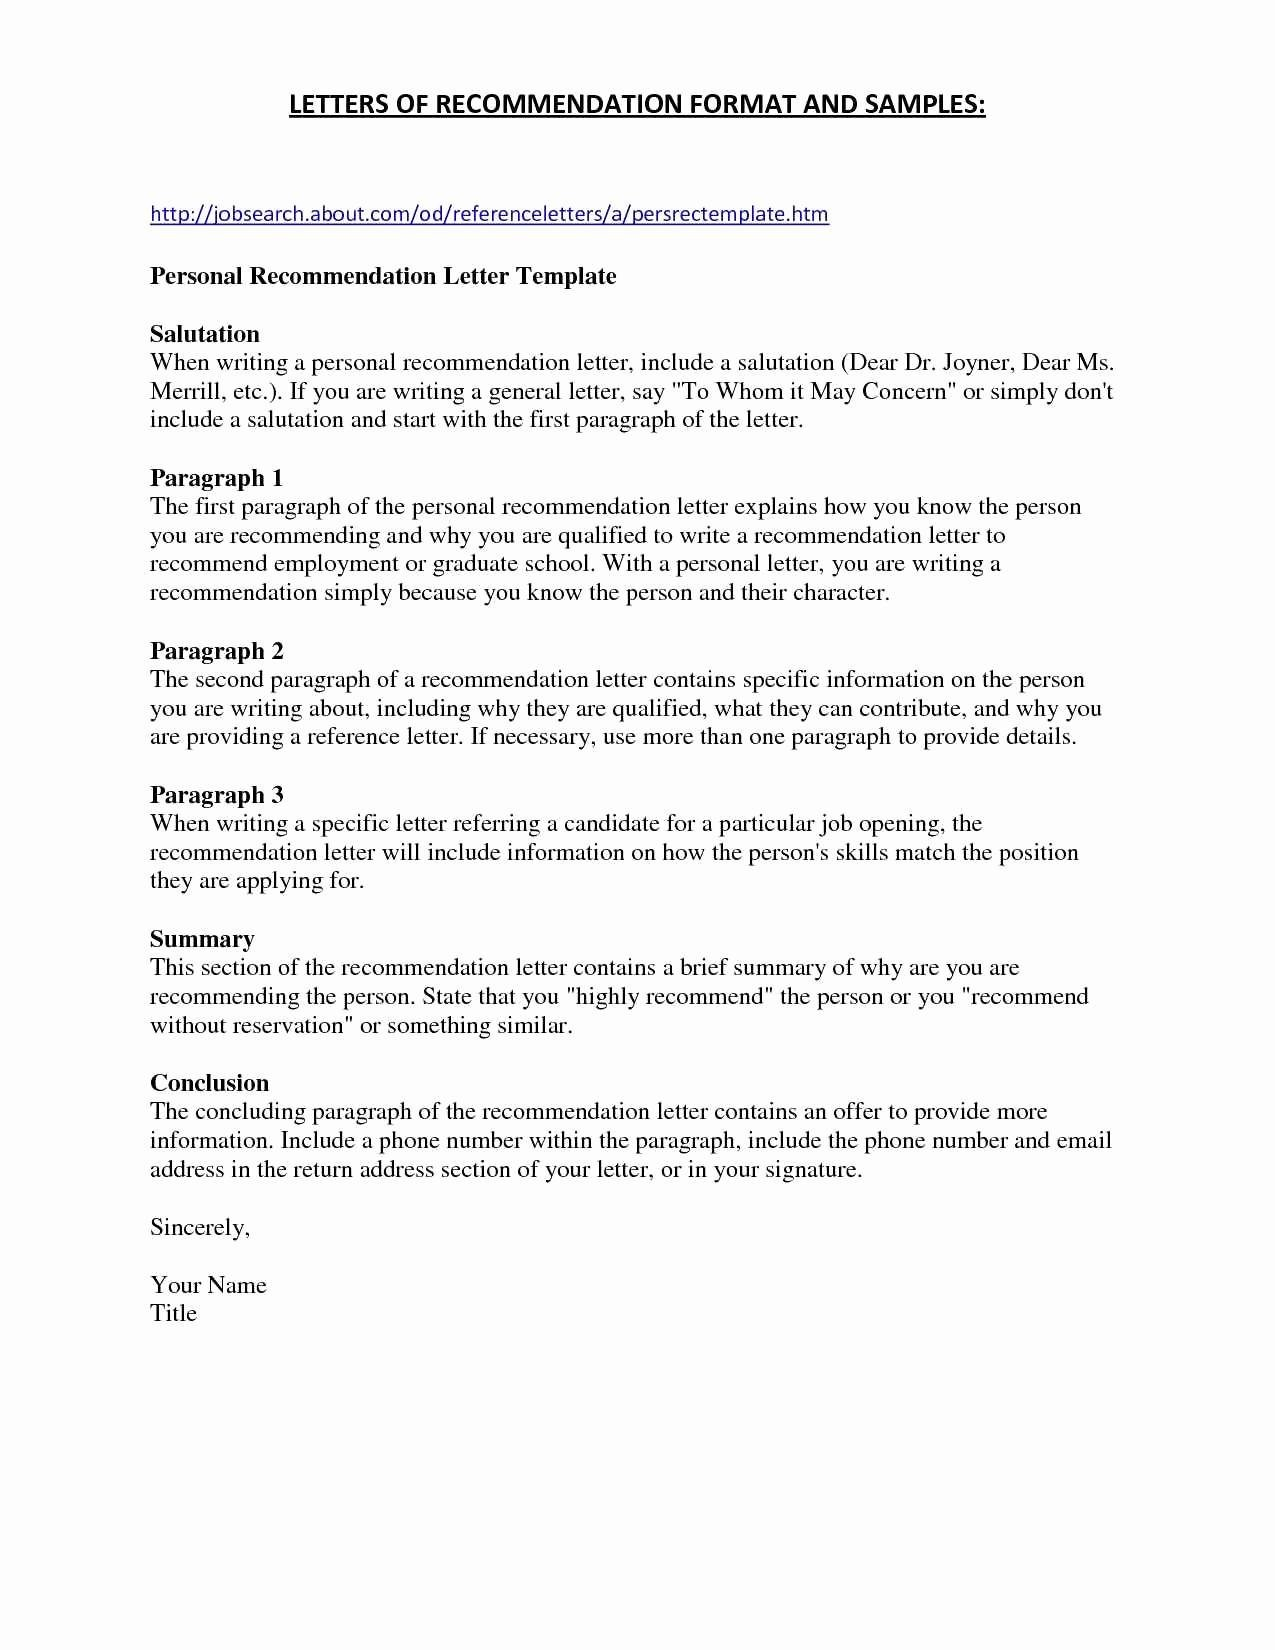 Cover Letter Template for First Job - Cover Letter to Consultant for Job Best New Job Fer Letter Template